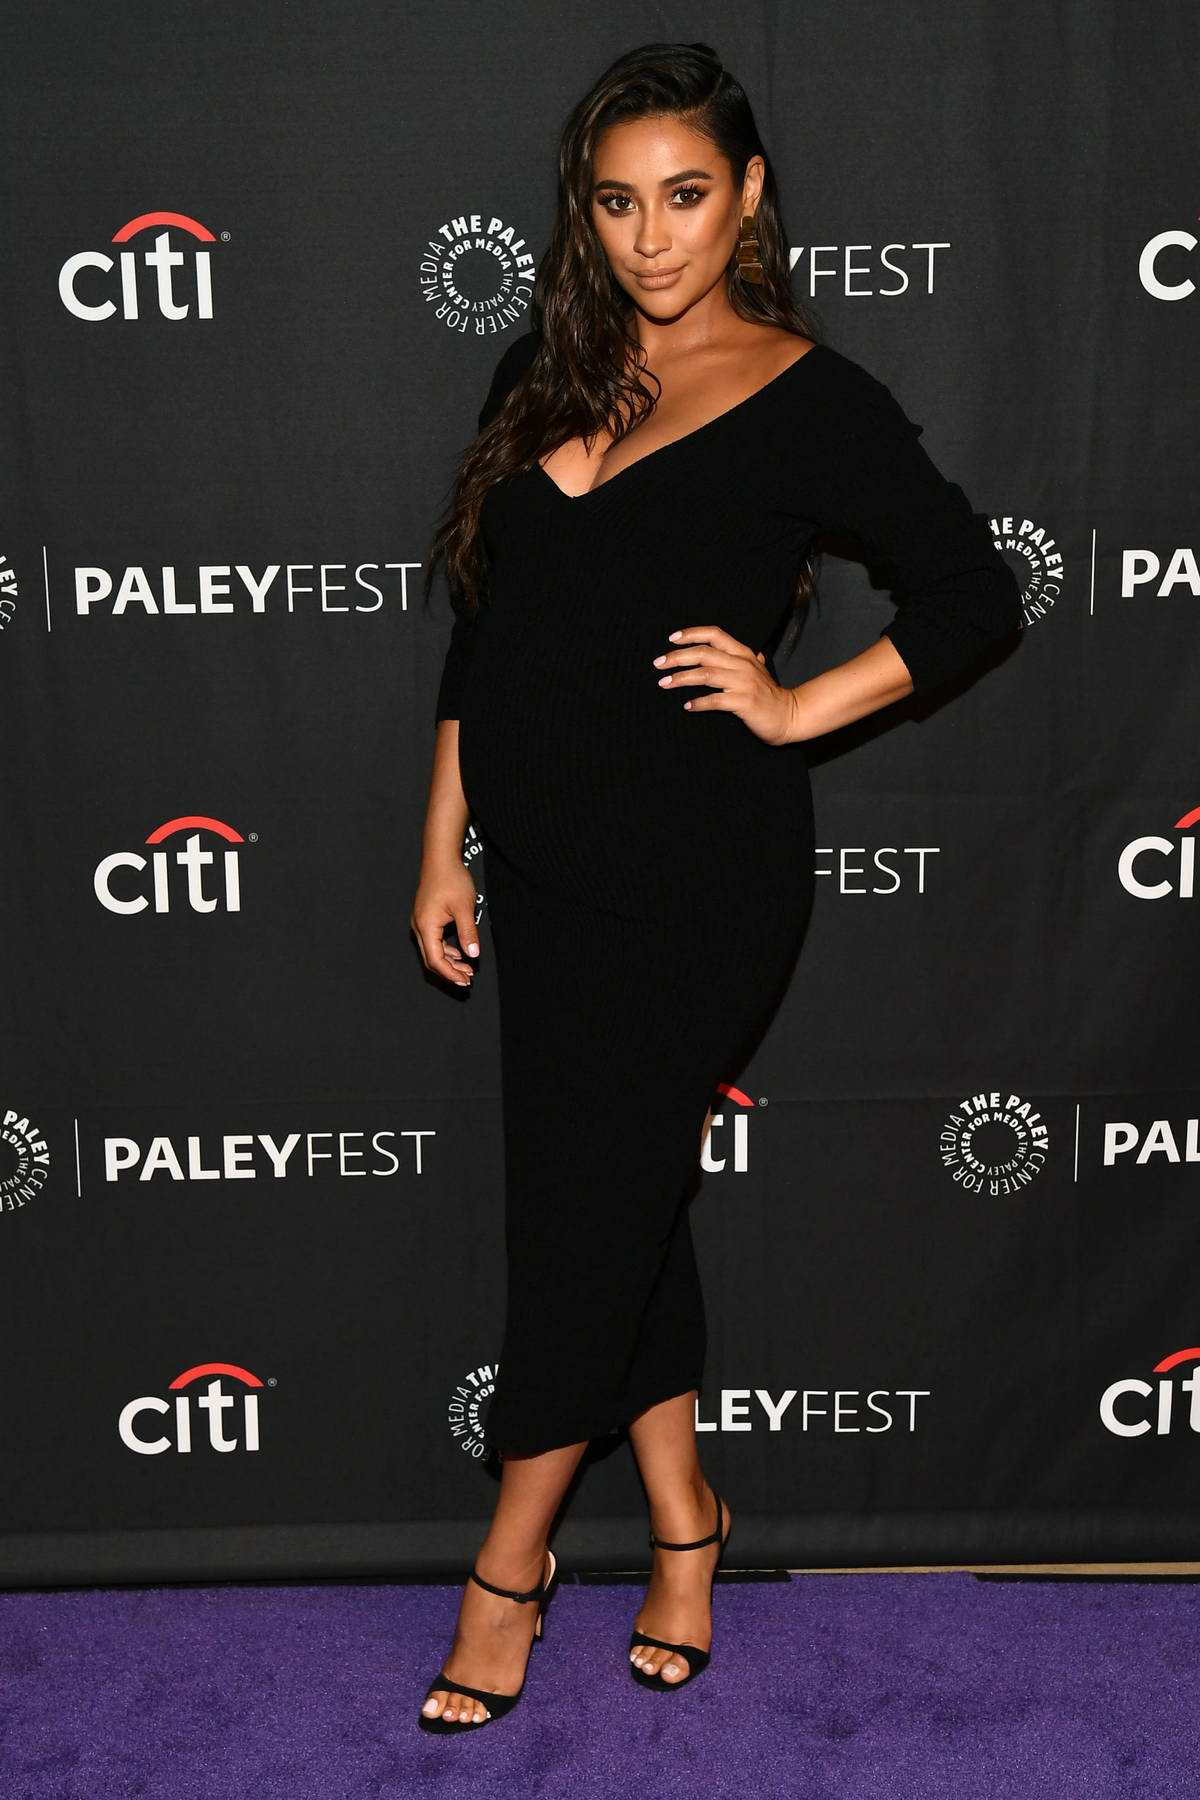 Shay Mitchell attends Hulu's 'Dollface' presentation at PaleyFest in Beverly Hills, Los Angeles